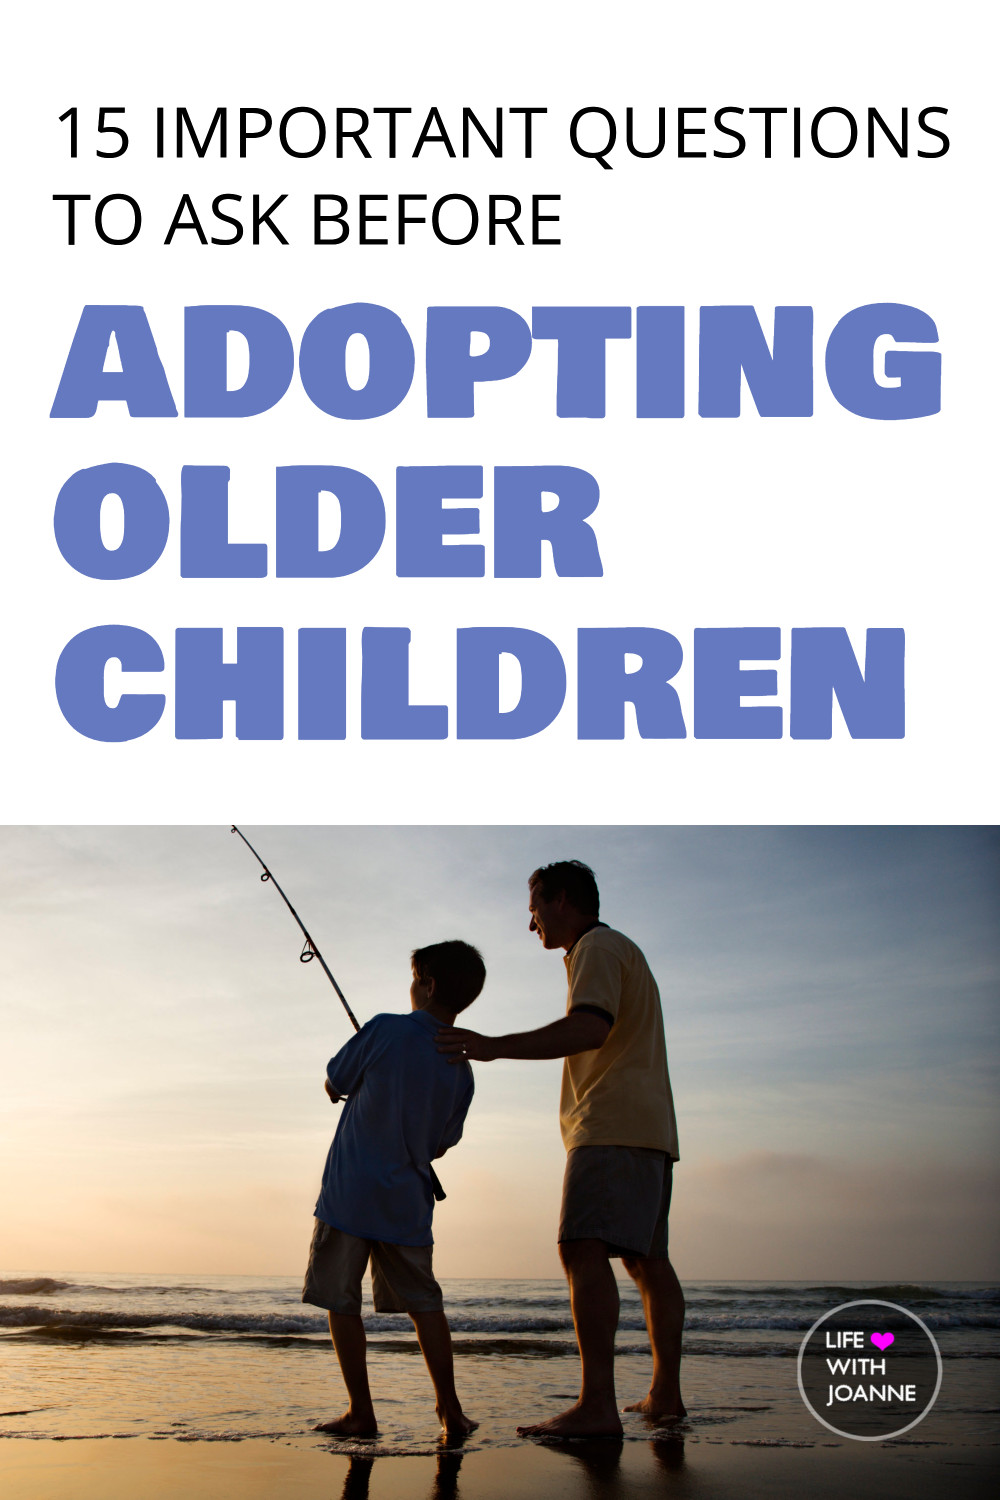 Adopting older children